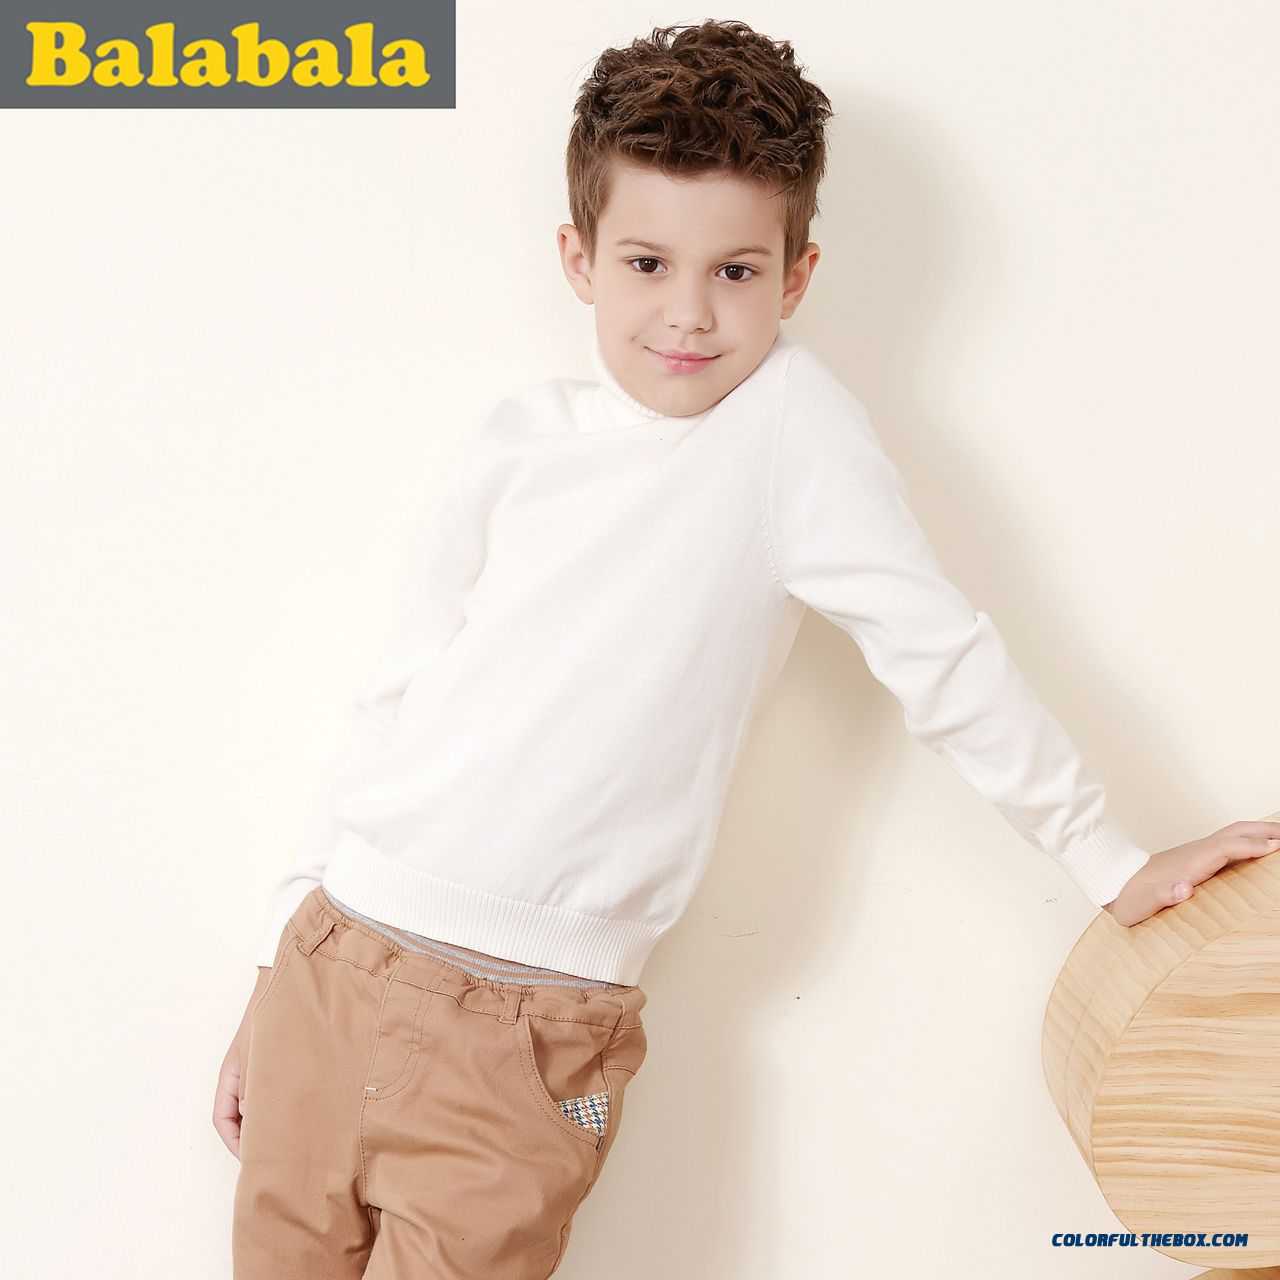 Balabala Kids Clothing Boy Sweater Pullover Sweater With High Collar Sweater Fall And Winter Kids' Bottoming Shirt